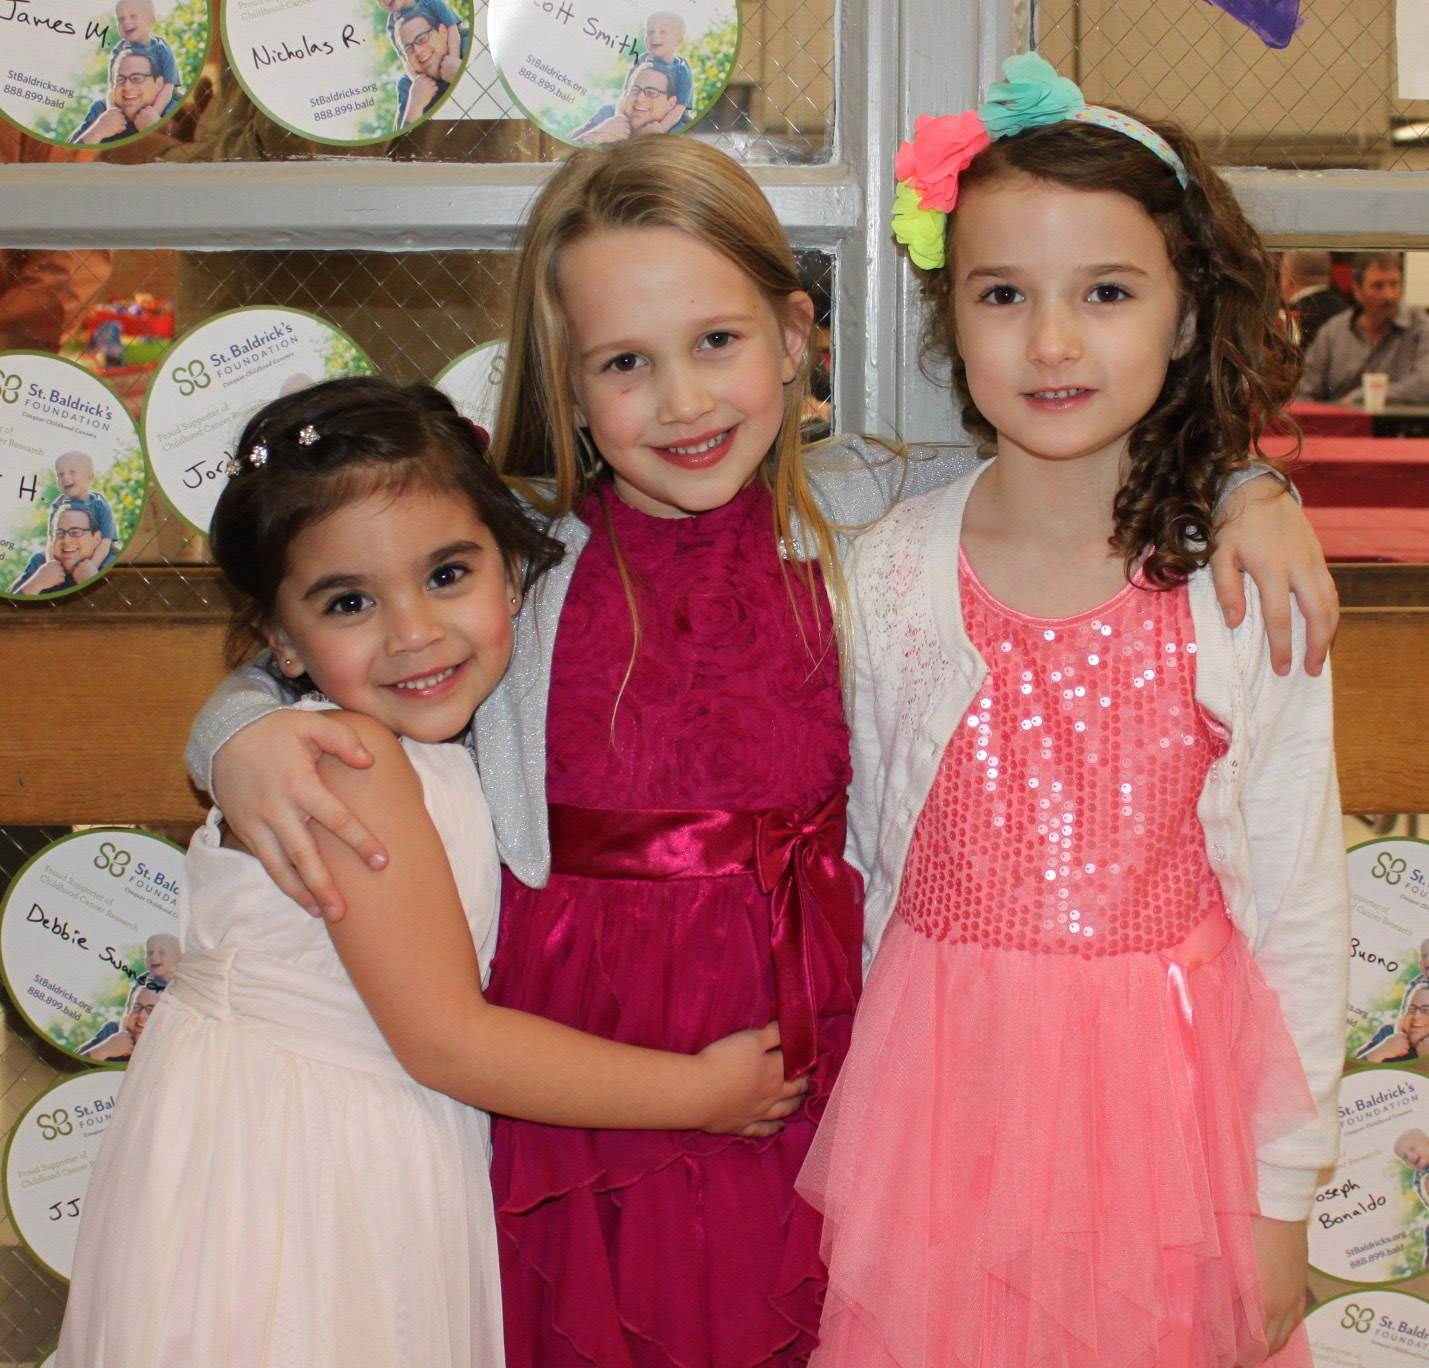 Pictured are  kindergarten students Hannah DiPalma, Ruby Huston and Charlotte Healy.